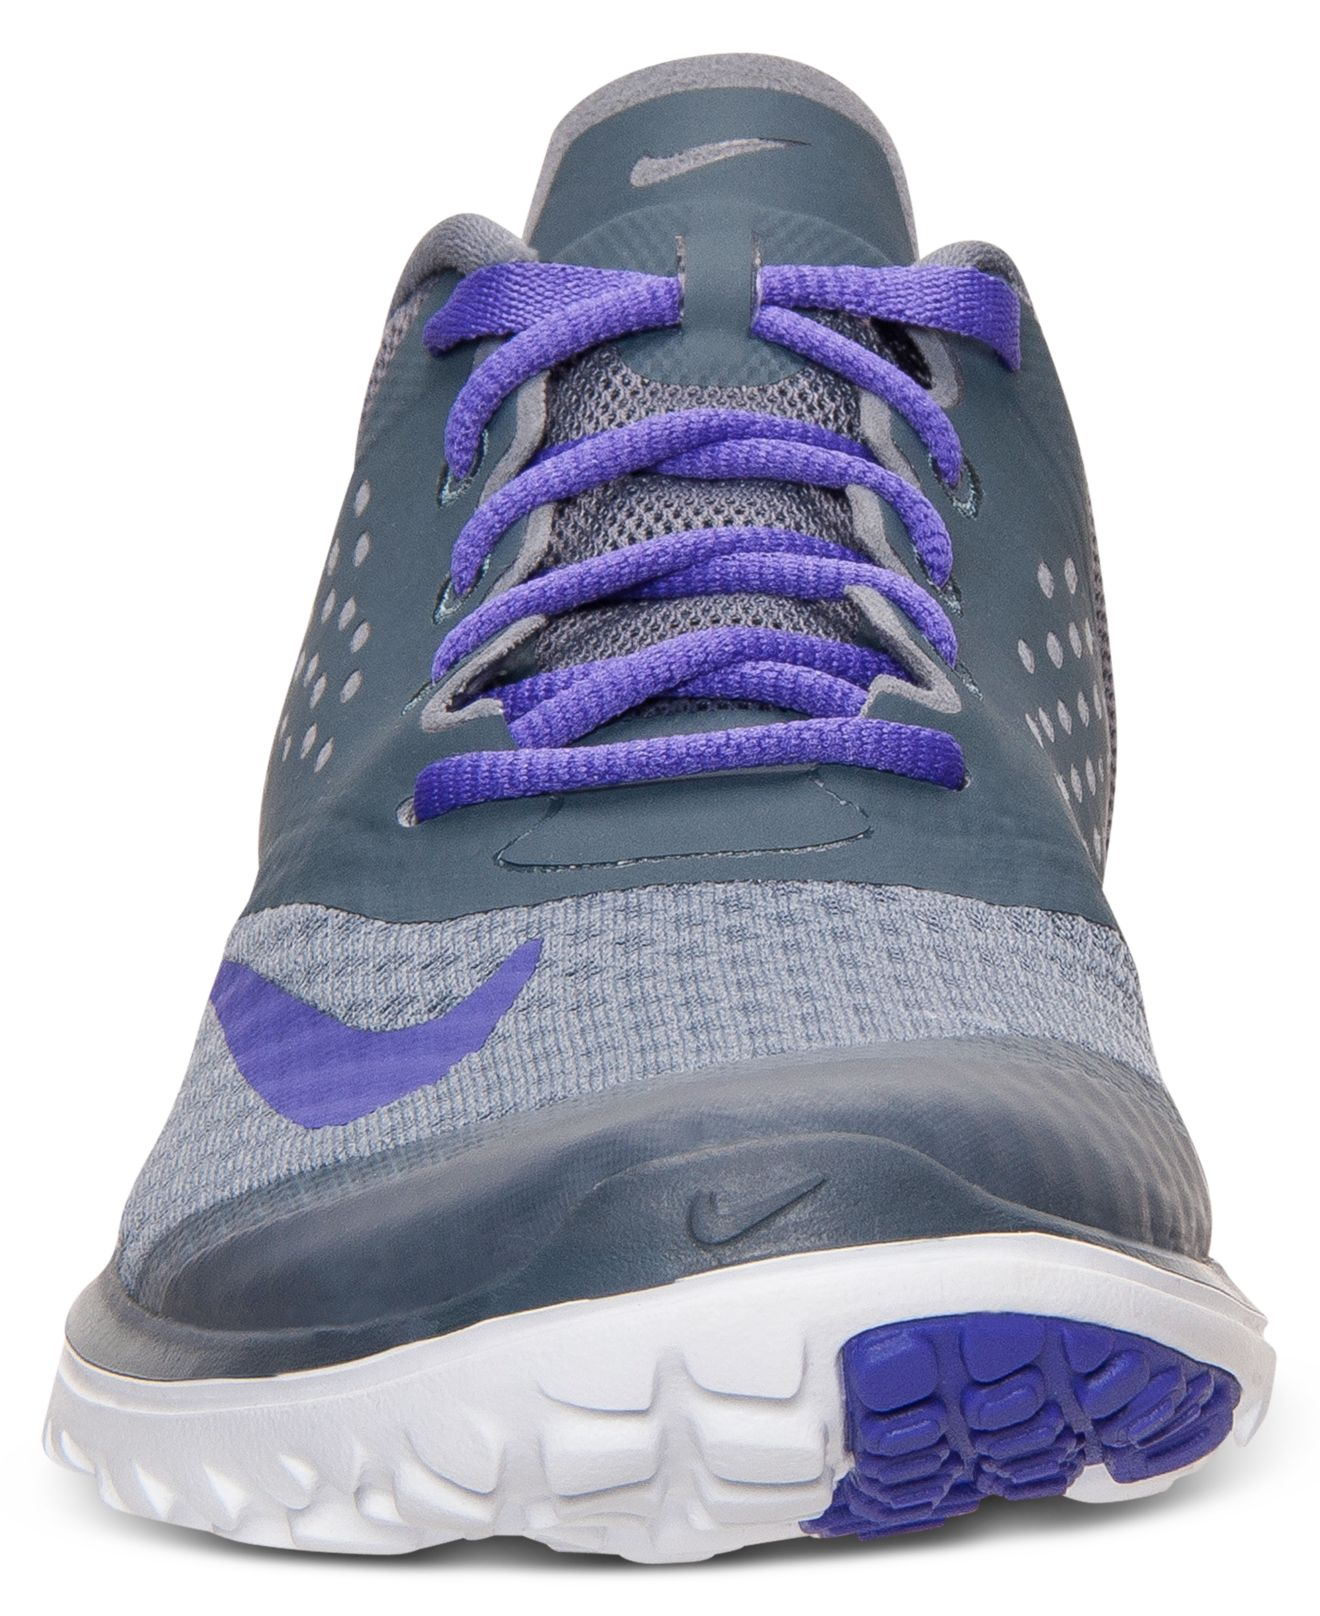 Nike FS Lite Run 4 Mens Running Shoes Sports Direct